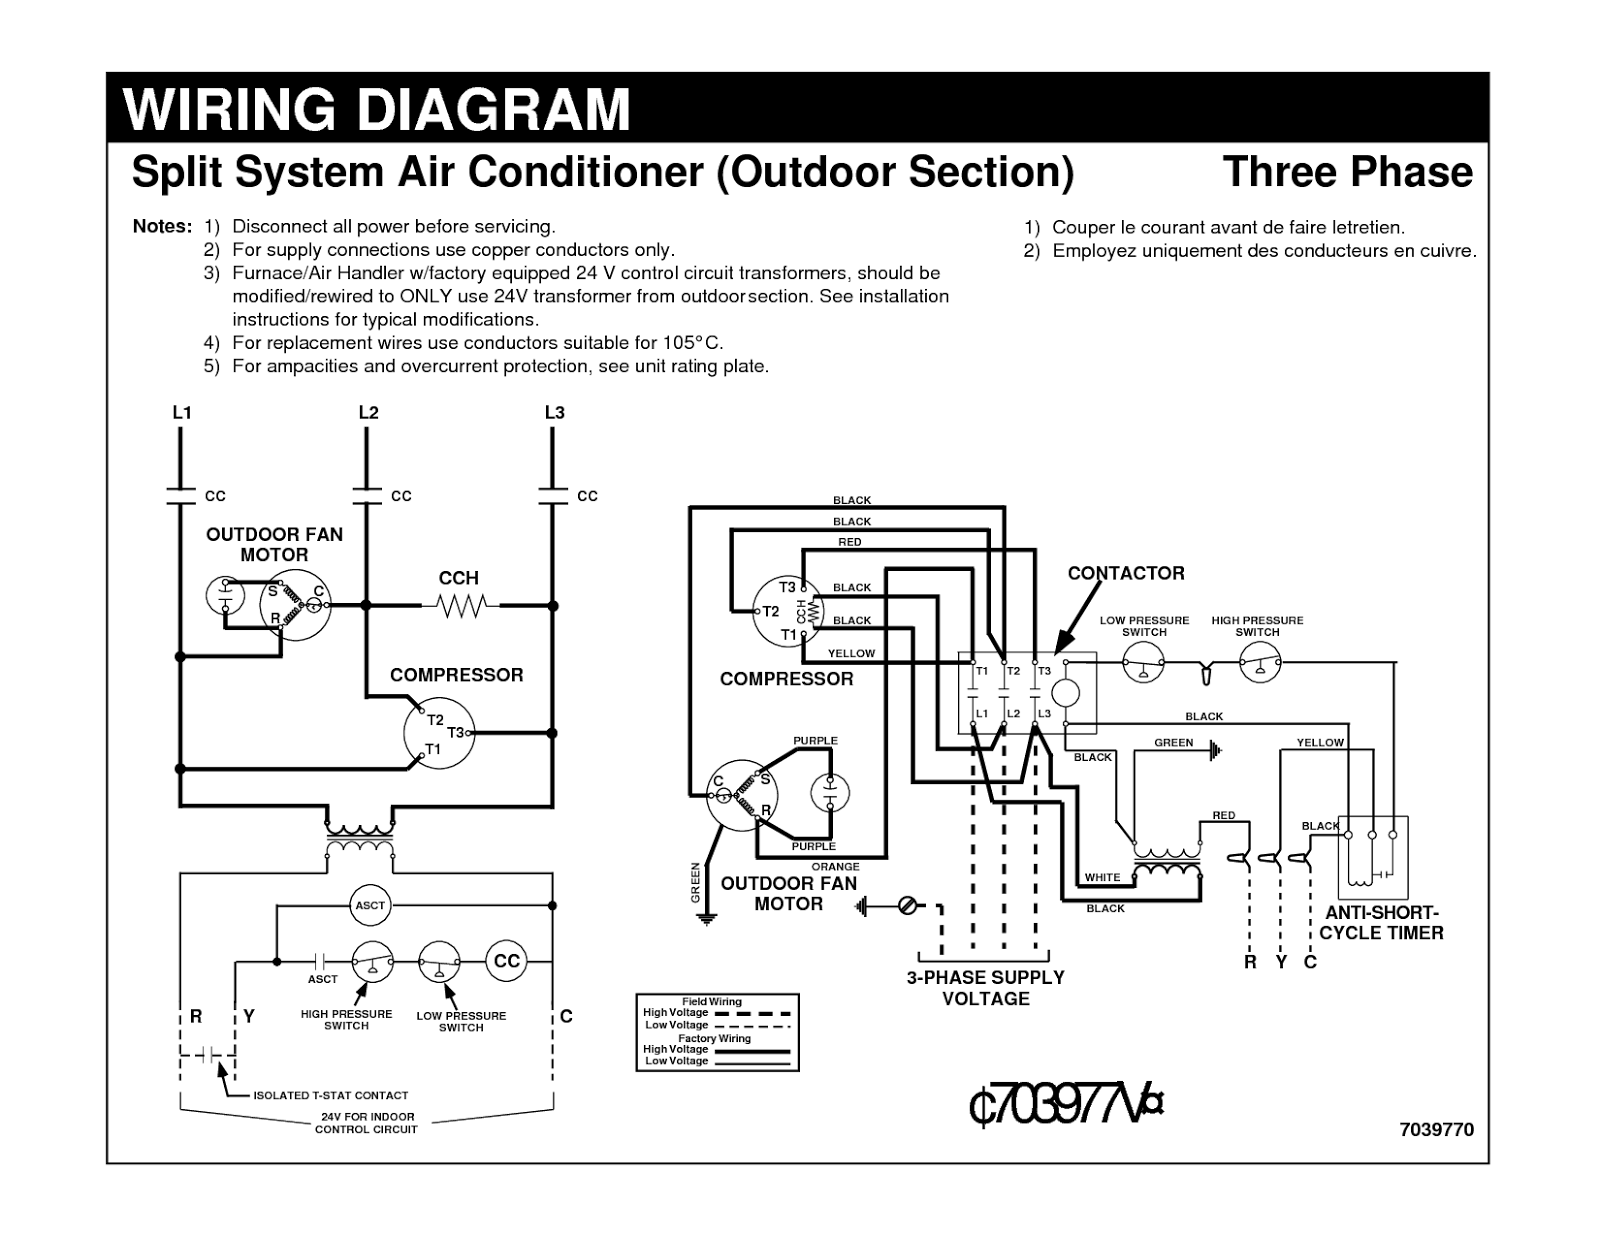 A C Wire Schematics. A. Wiring Examples And Instructions